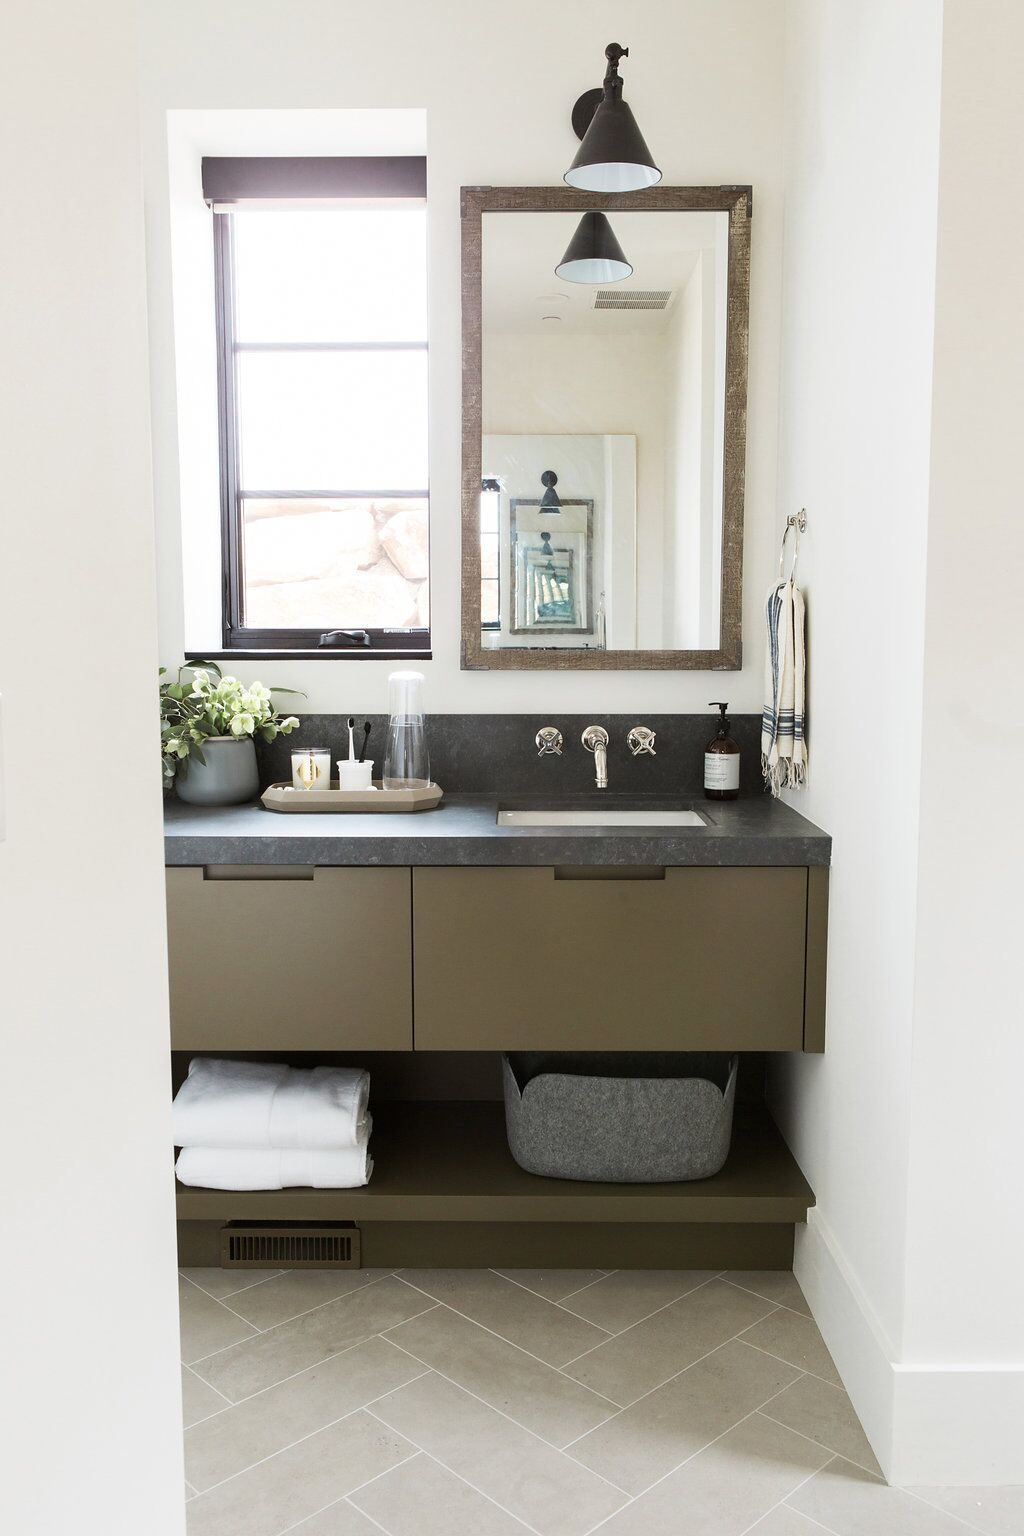 Olive green vanity with grey counter tops